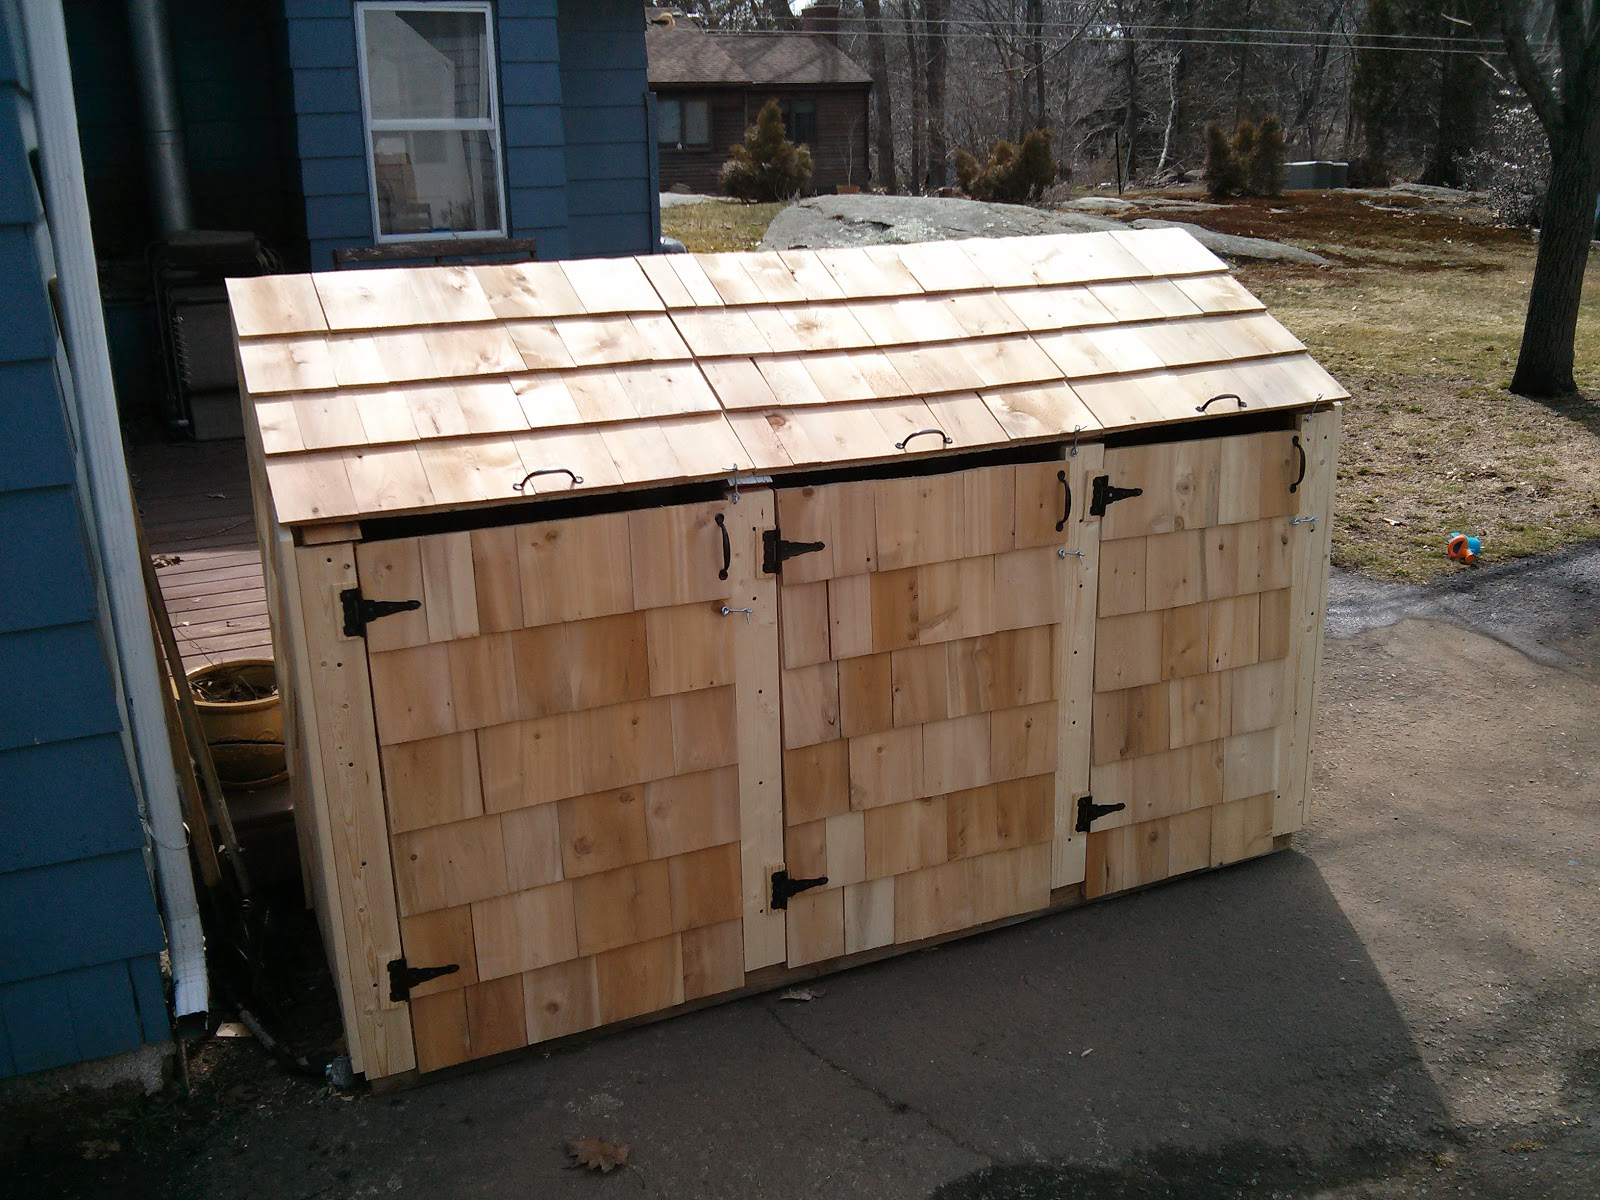 Simple And Easy Steps To Build a Garbage Storage Shed | Shed ...